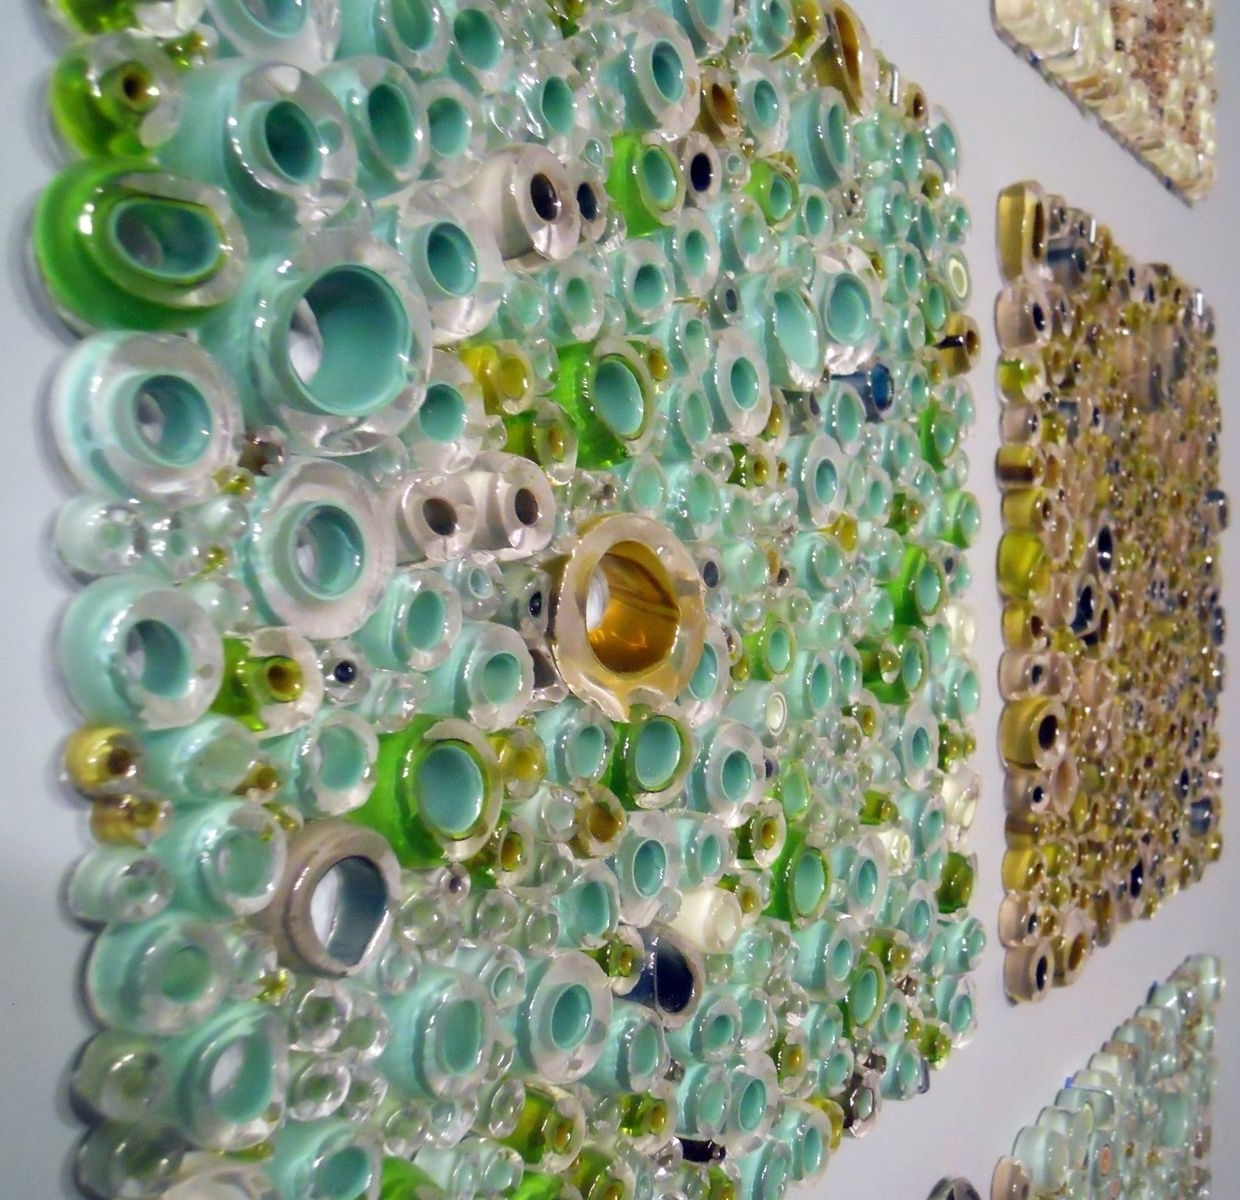 Handmade Glass Wall Panel Art Work, Fused Tubing Serieswolf Within Famous Fused Glass Art For Walls (View 8 of 15)